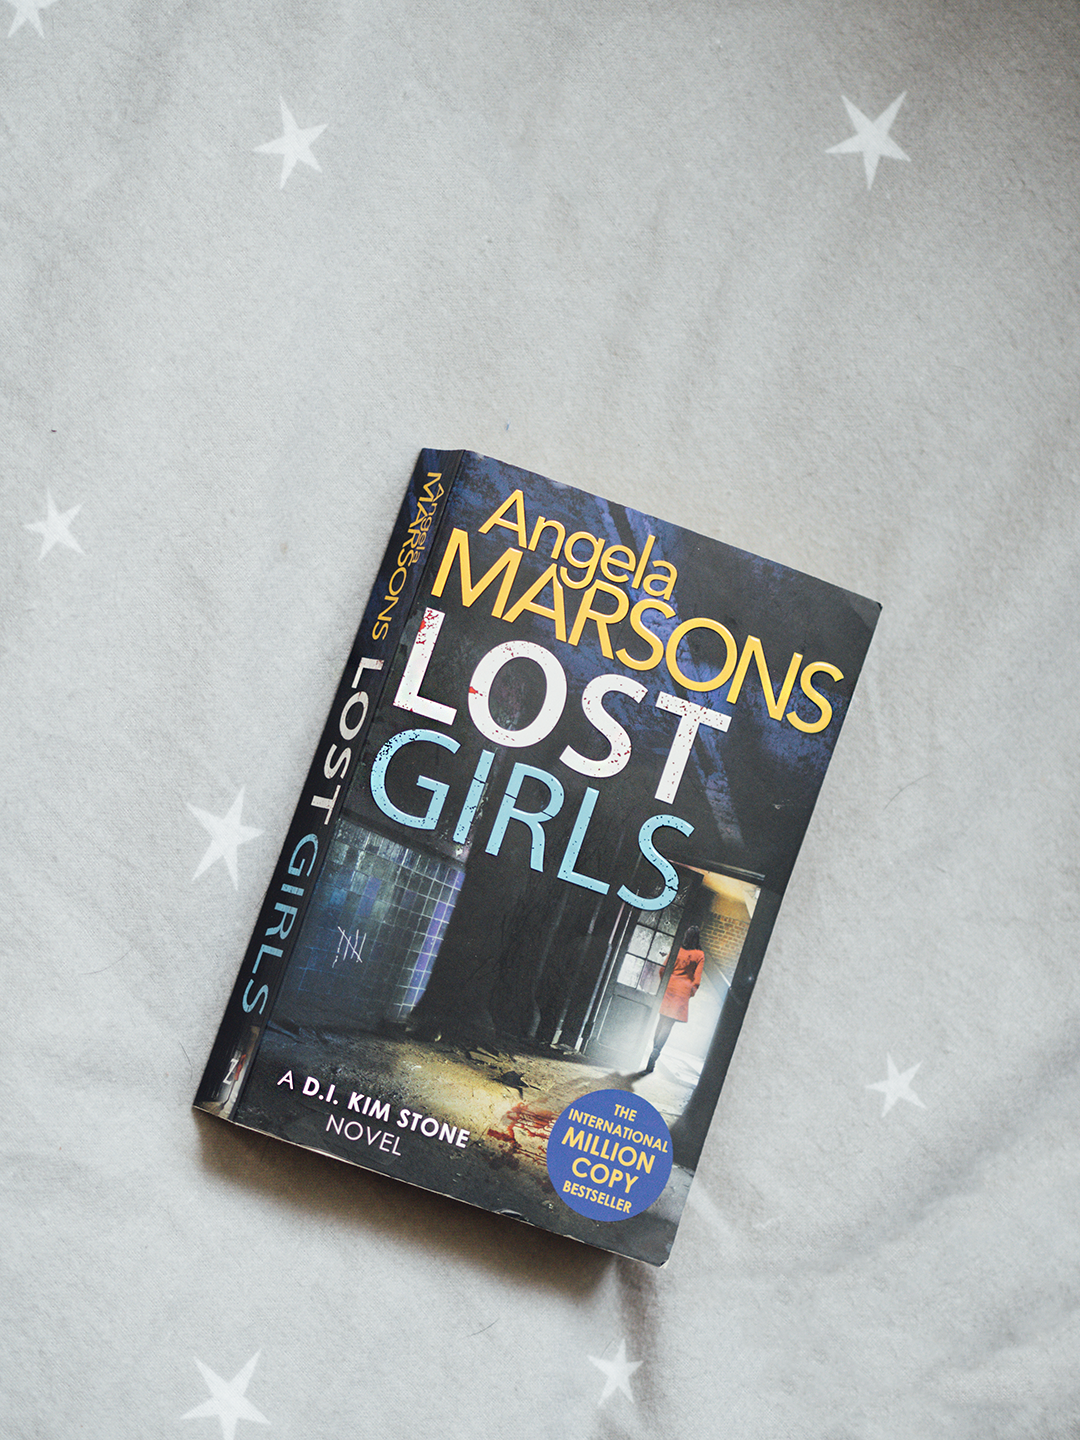 Falling back in love with Reading Lost Girls Angela Marsons